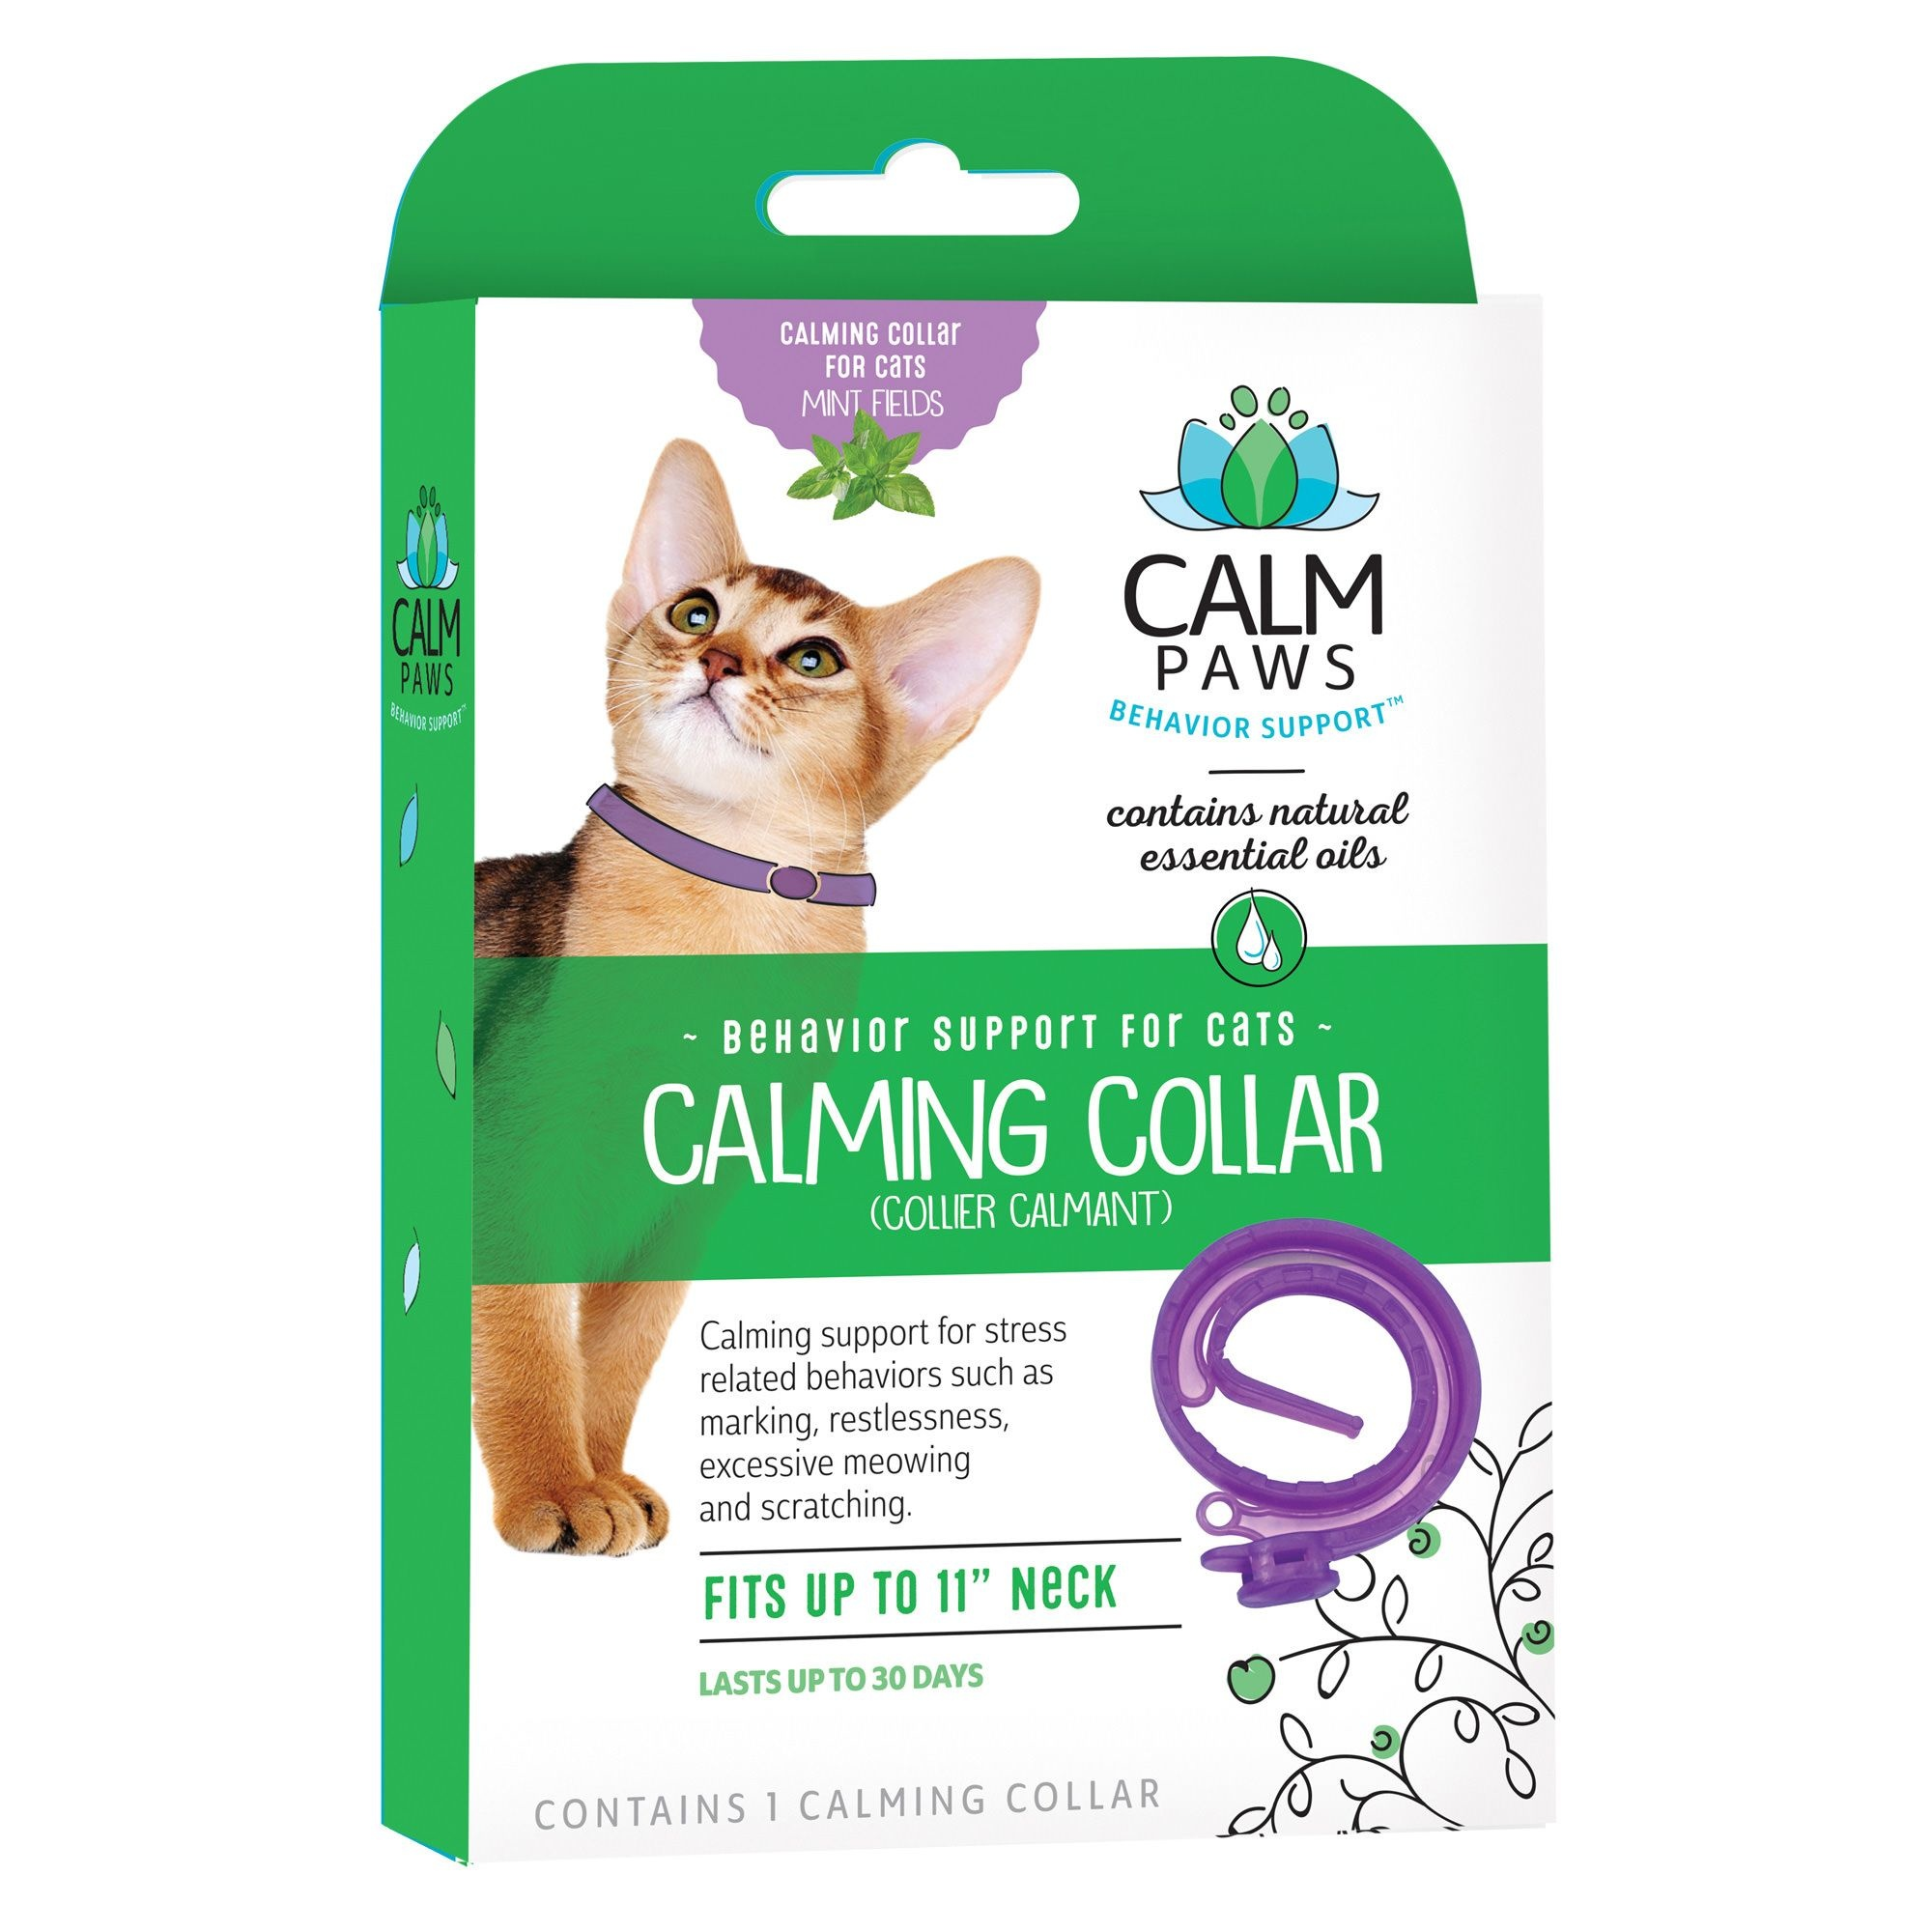 21st Centry Animal Health Care Calm Paws Behavior Support Calming Cat Collar